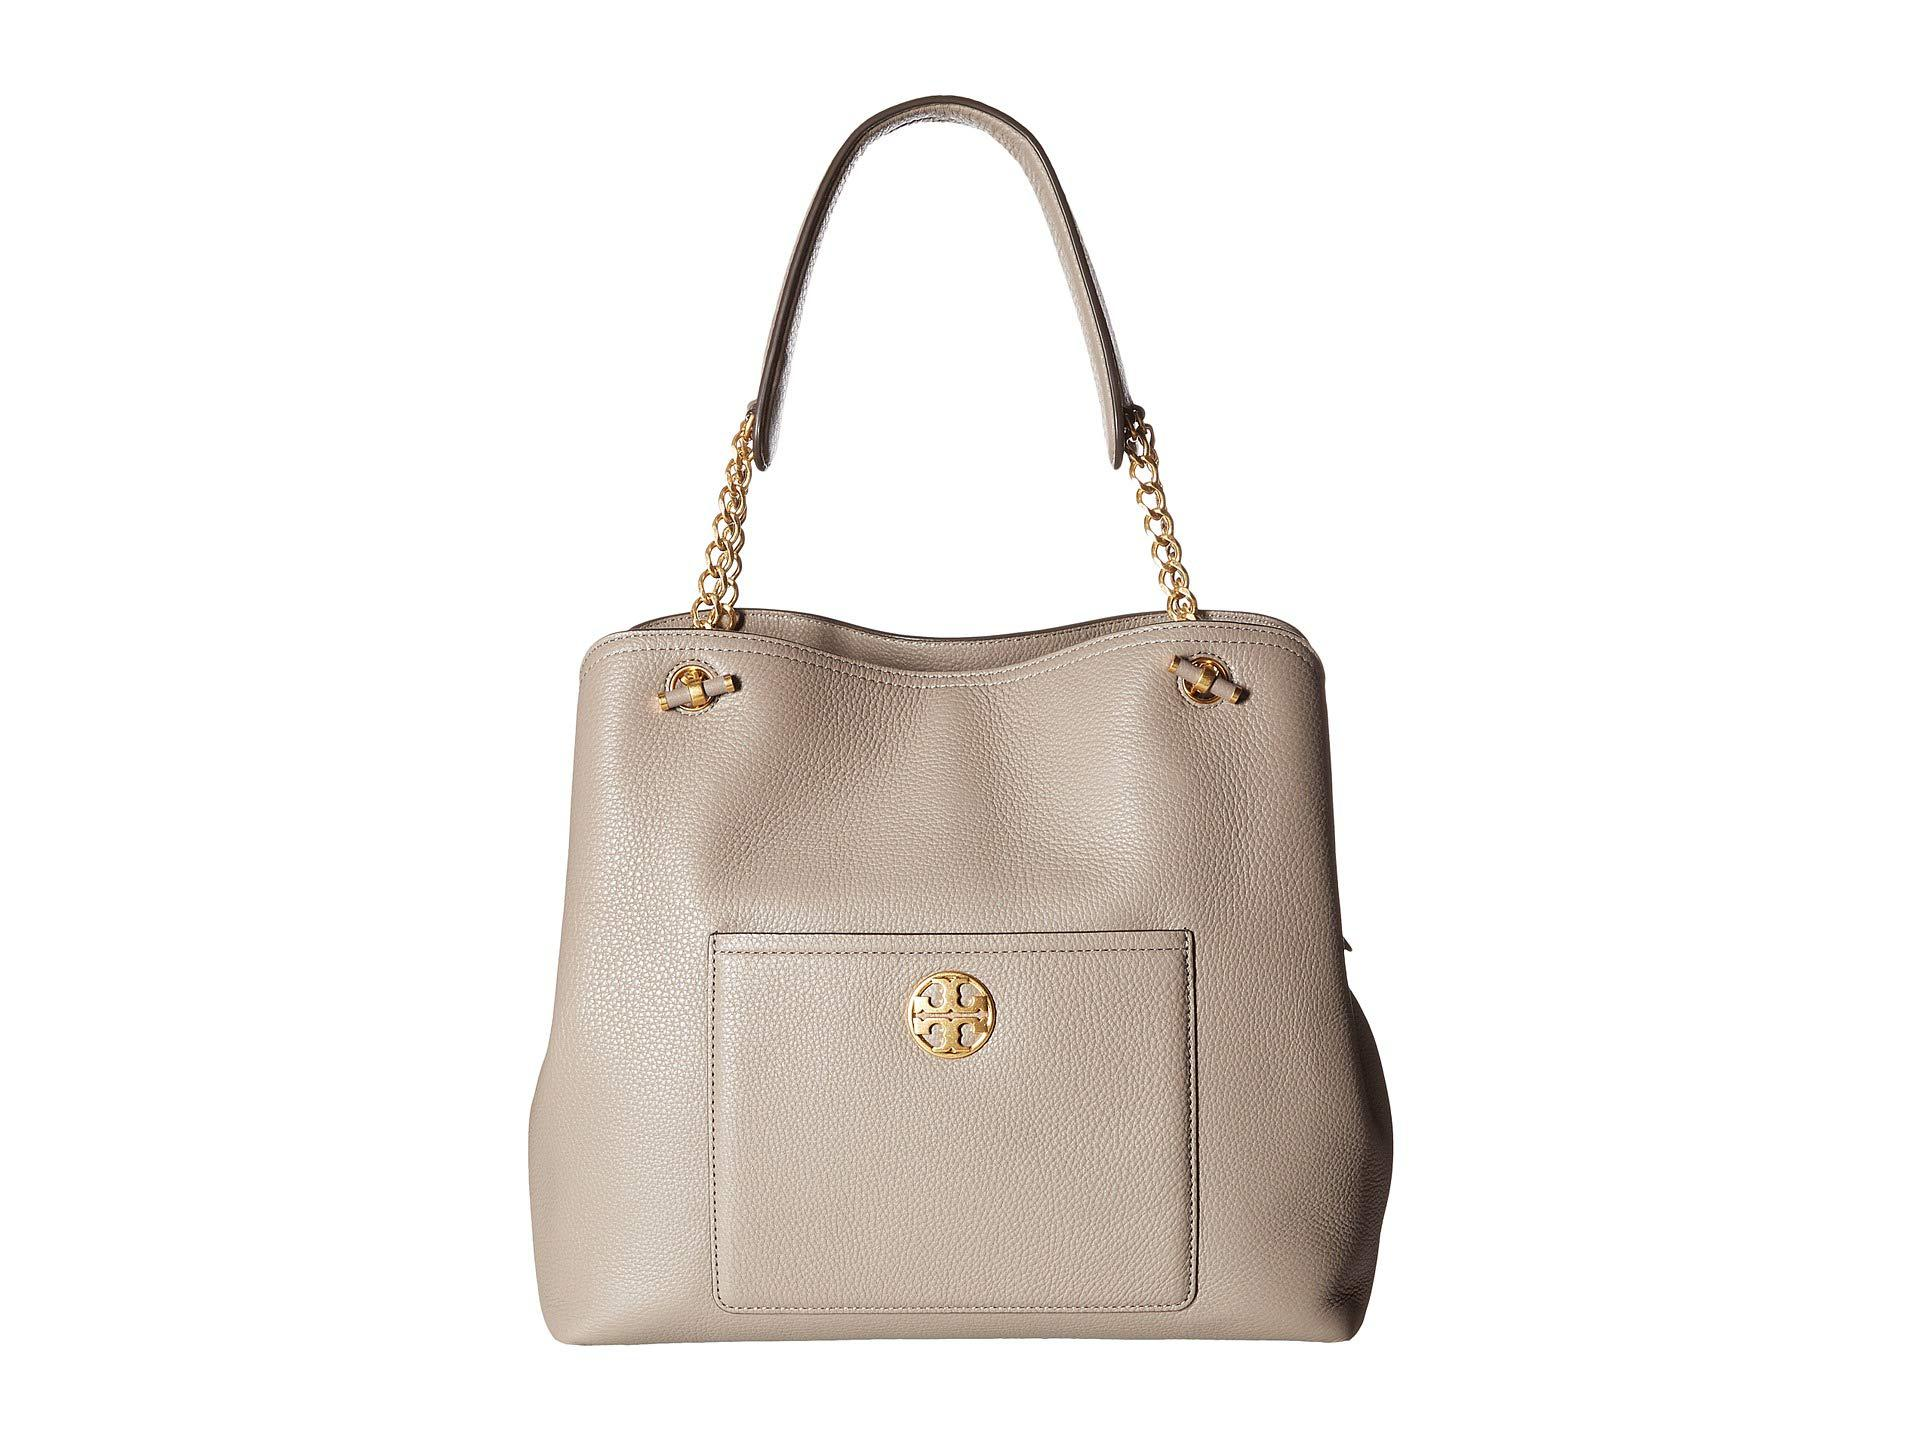 65e616cbb66 Lyst - Tory Burch Chelsea Slouchy Leather Tote